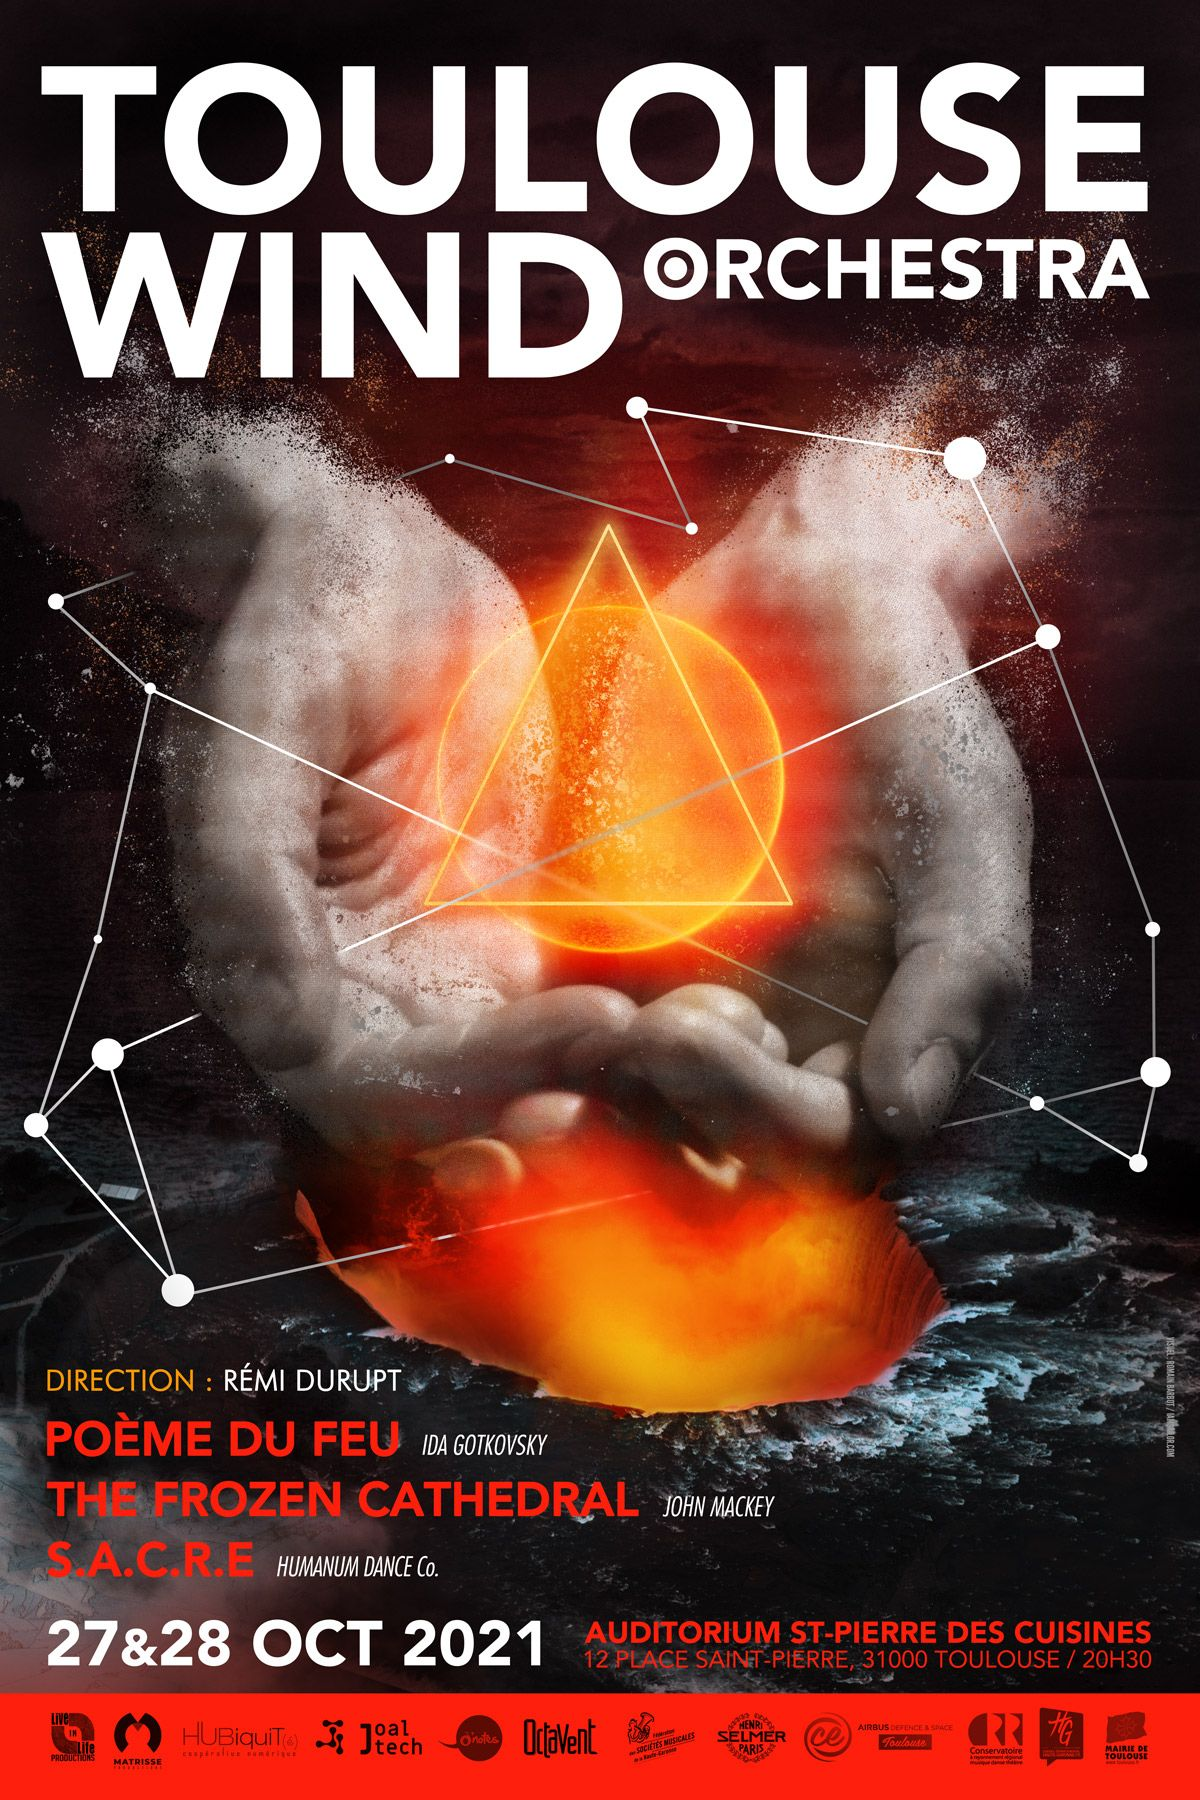 Toulouse Wind Orchestra - octobre 2021